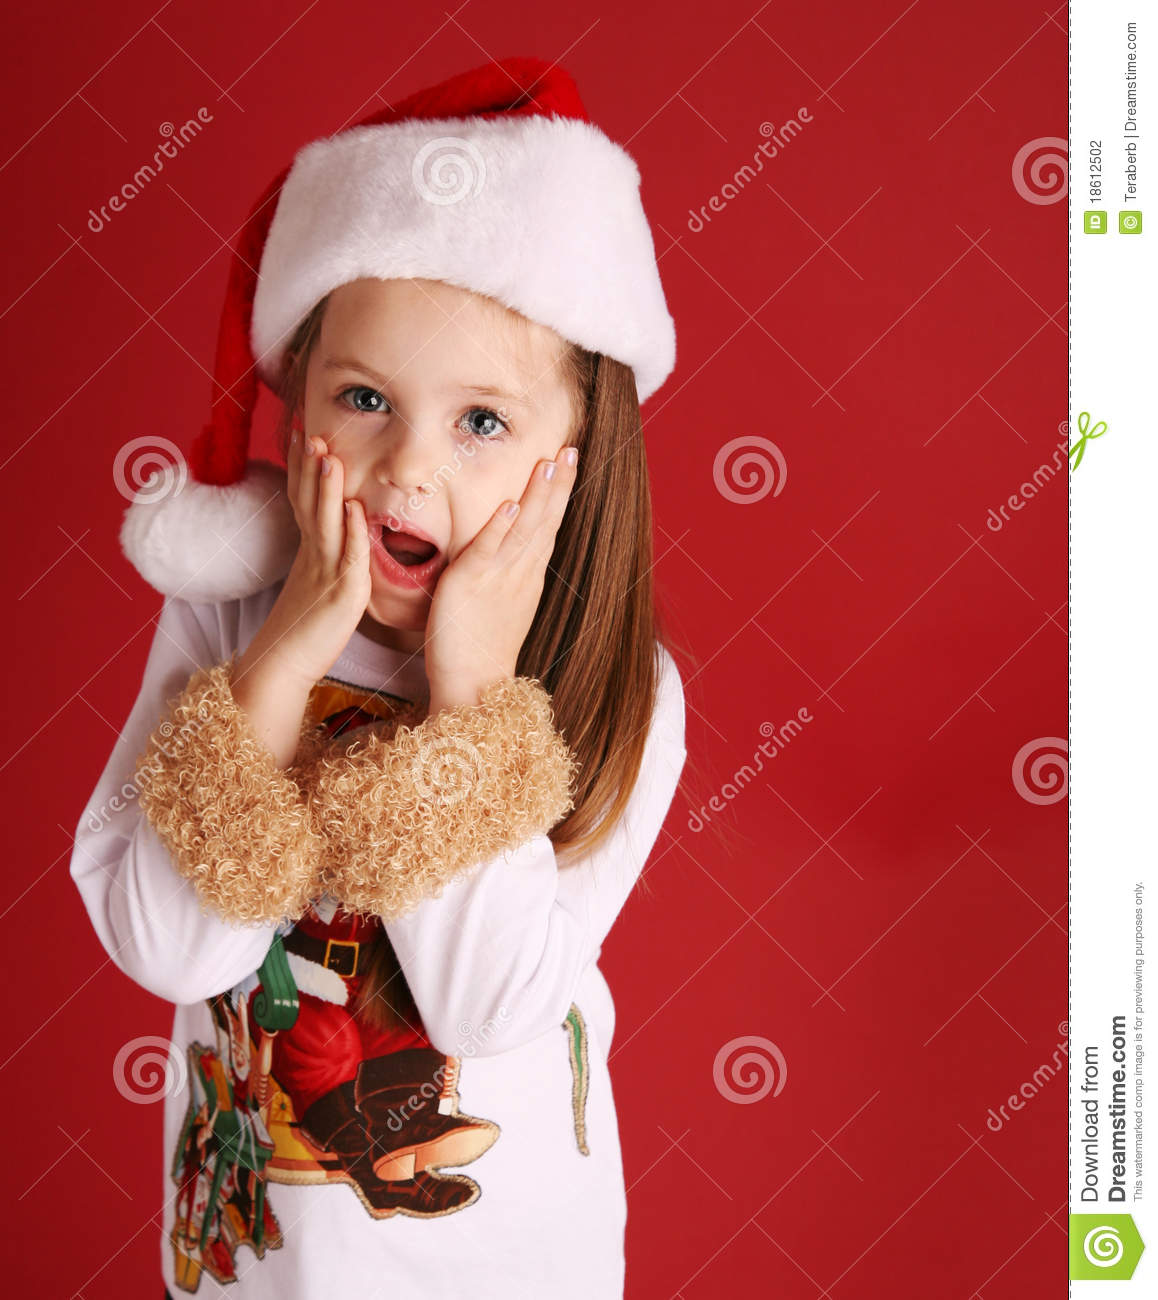 4300003478c9b Cute Little Girl In Christmas Wear Stock Photo - Image of background ...